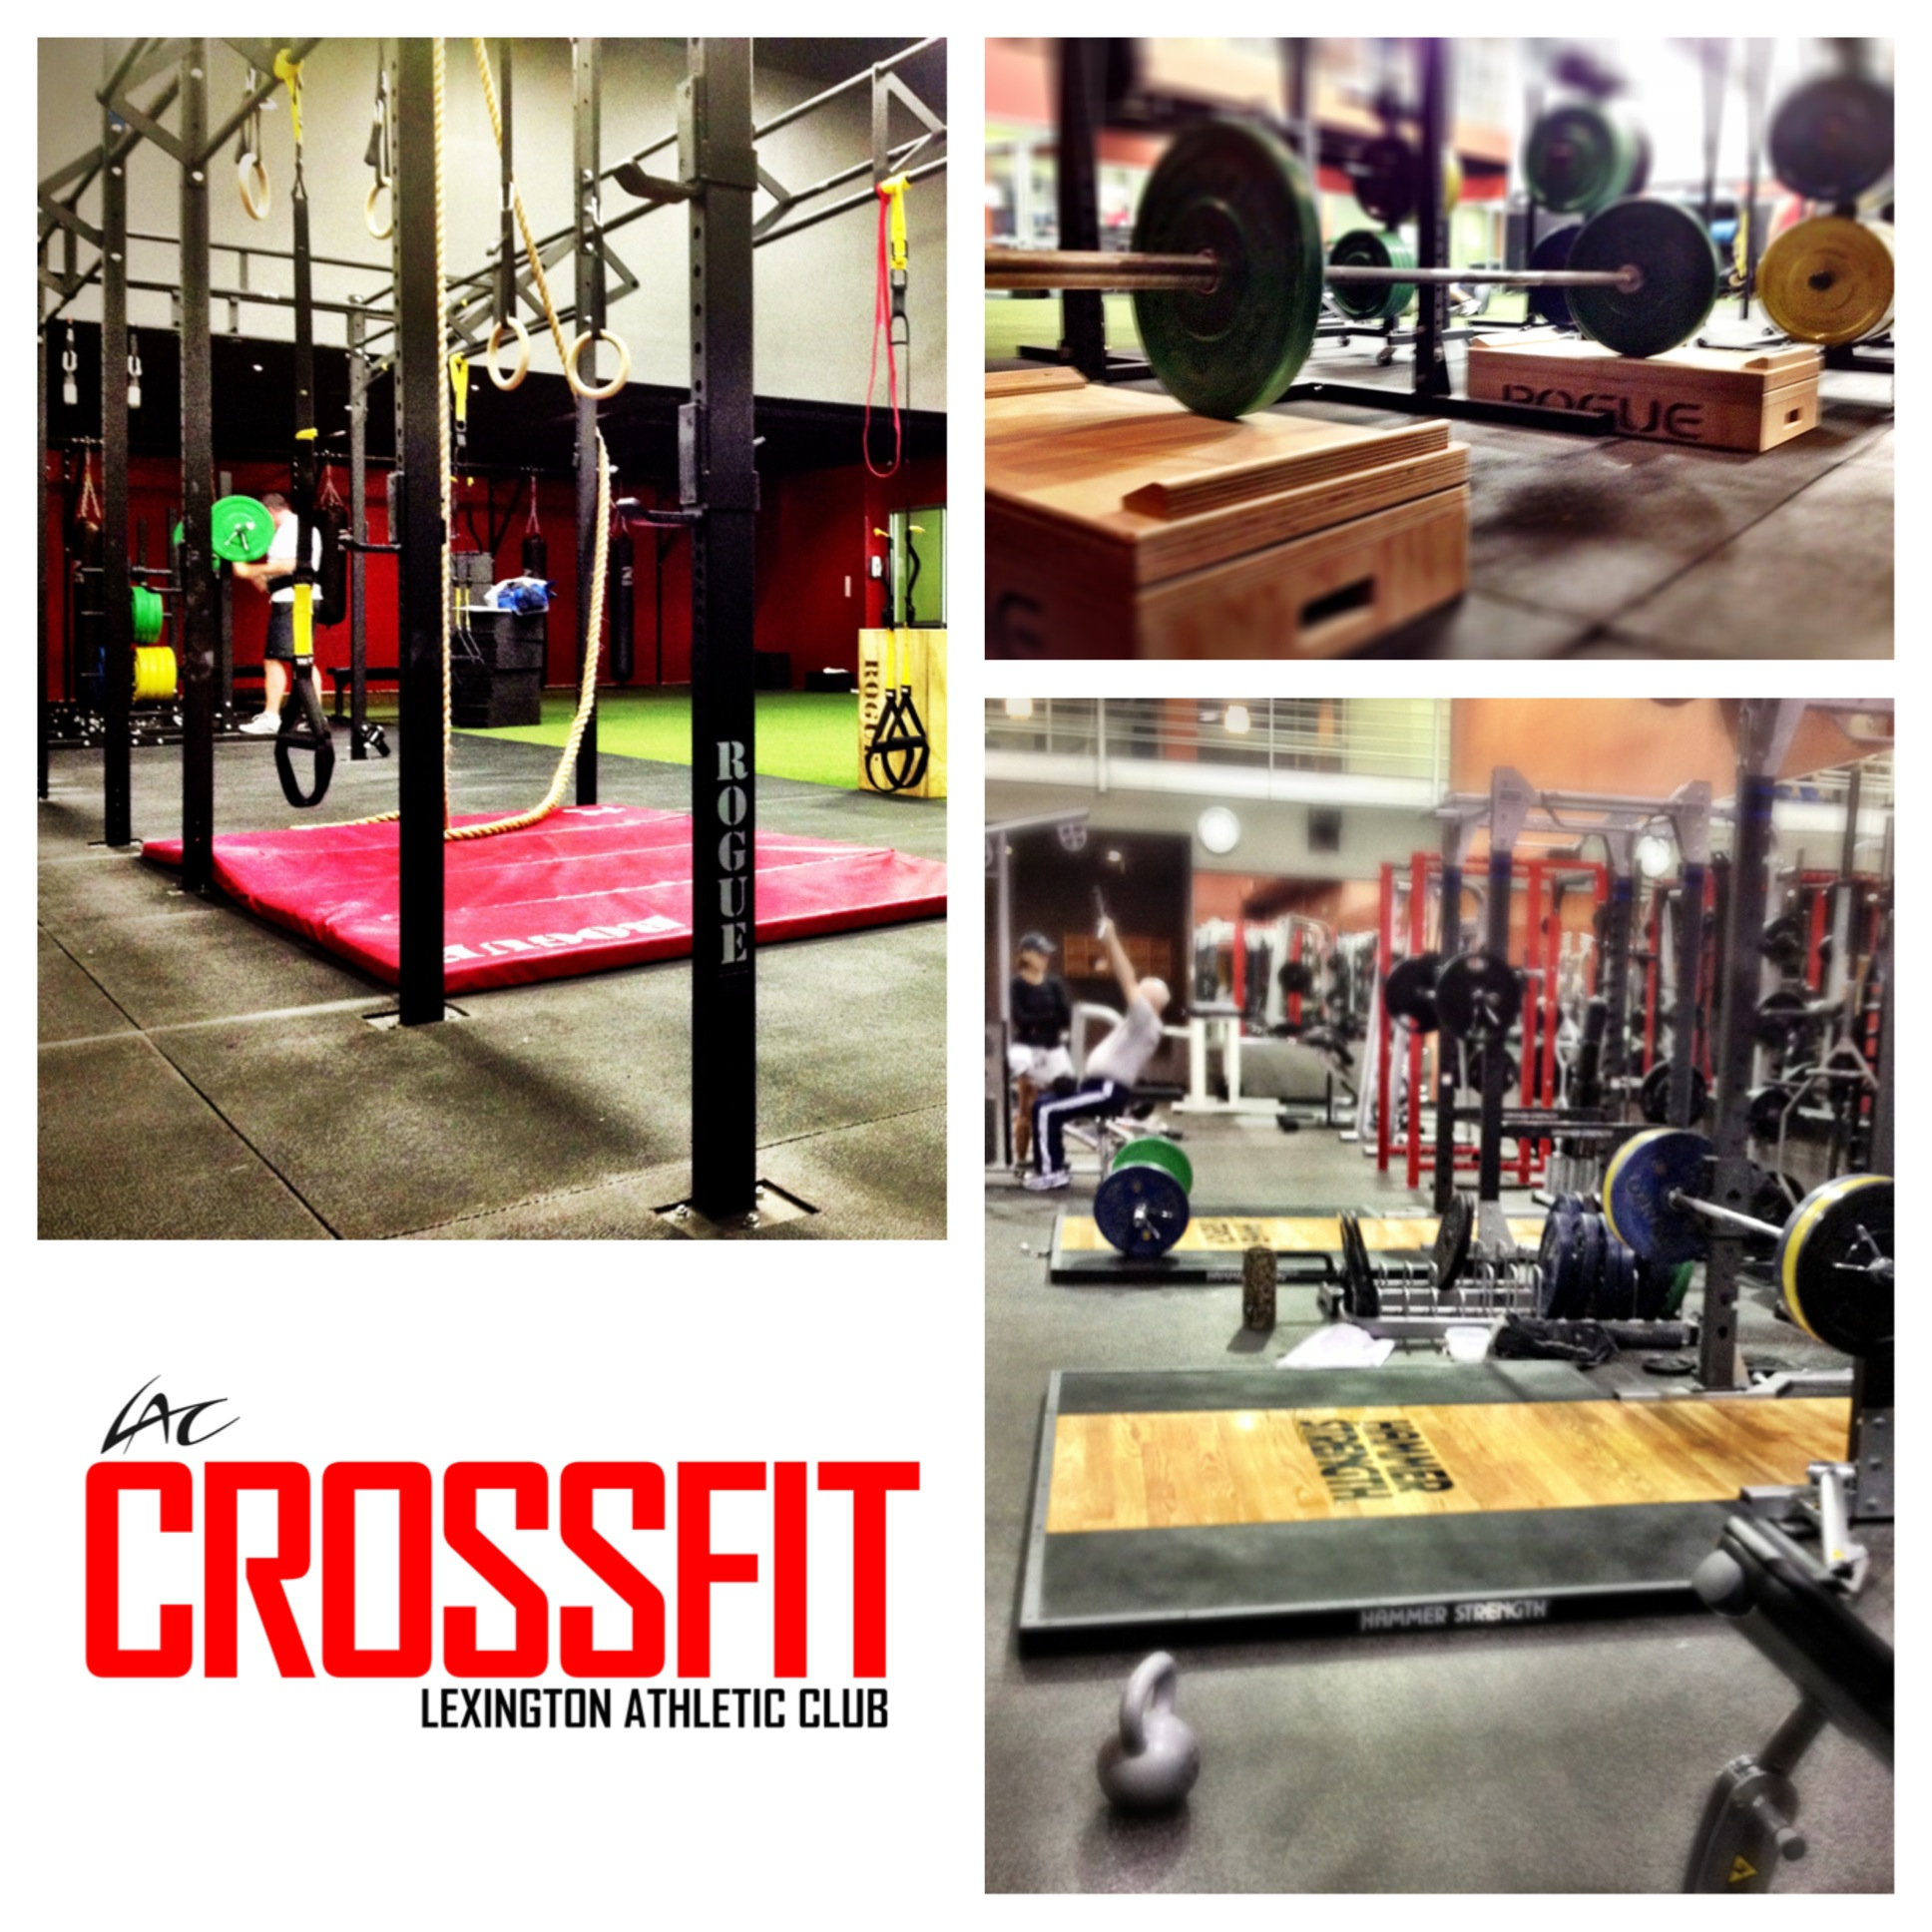 crossfit collage